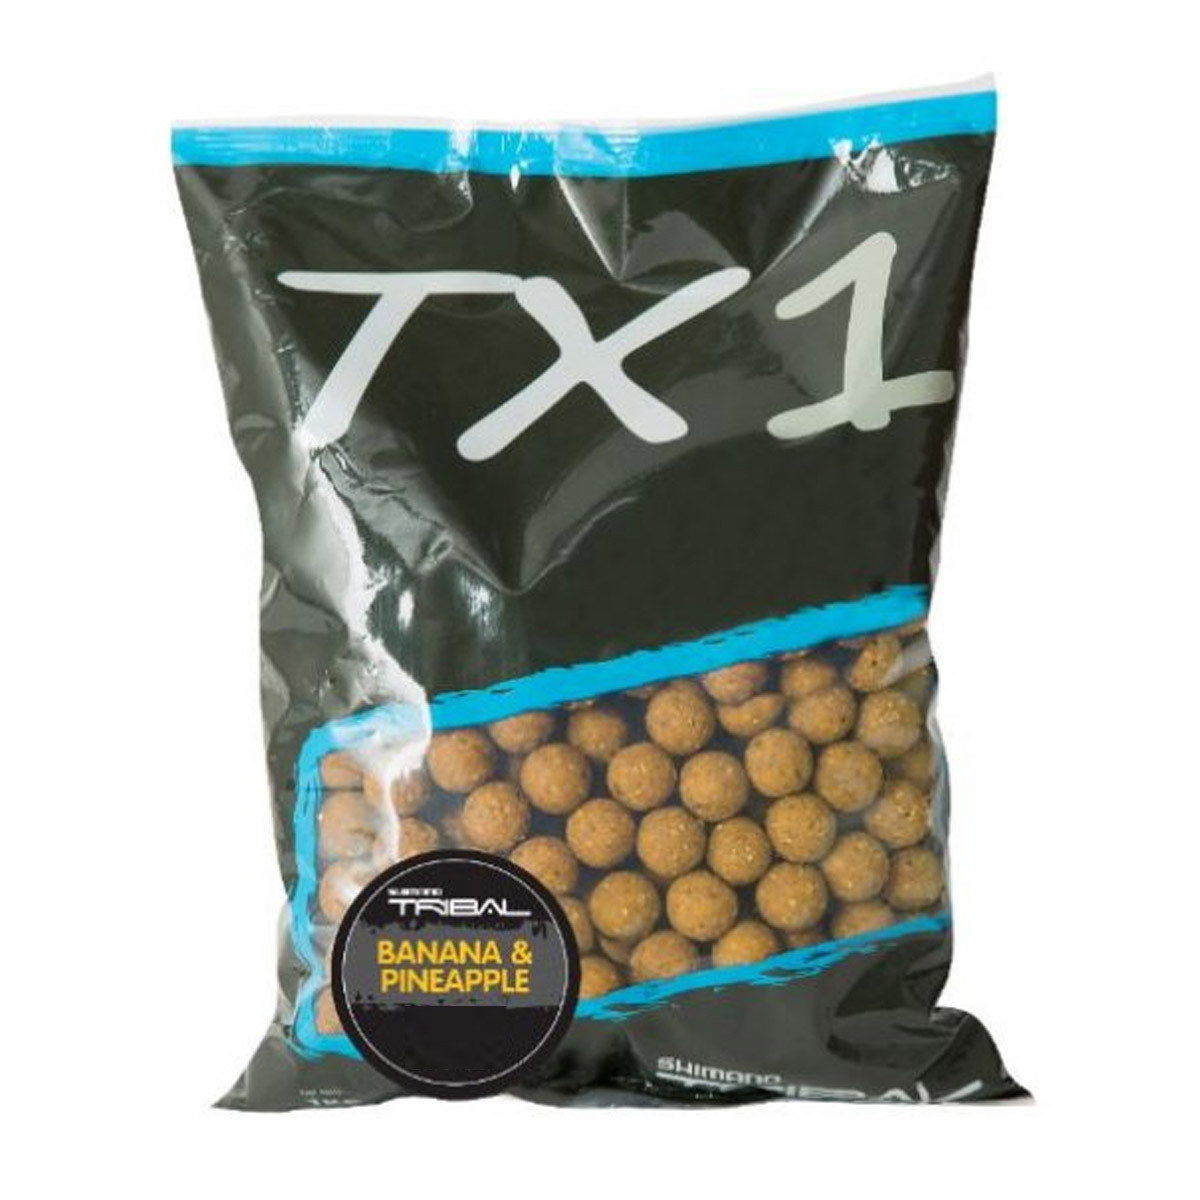 Shimano Tribal TX1 Banana & Pineapple Boilies 1 KG